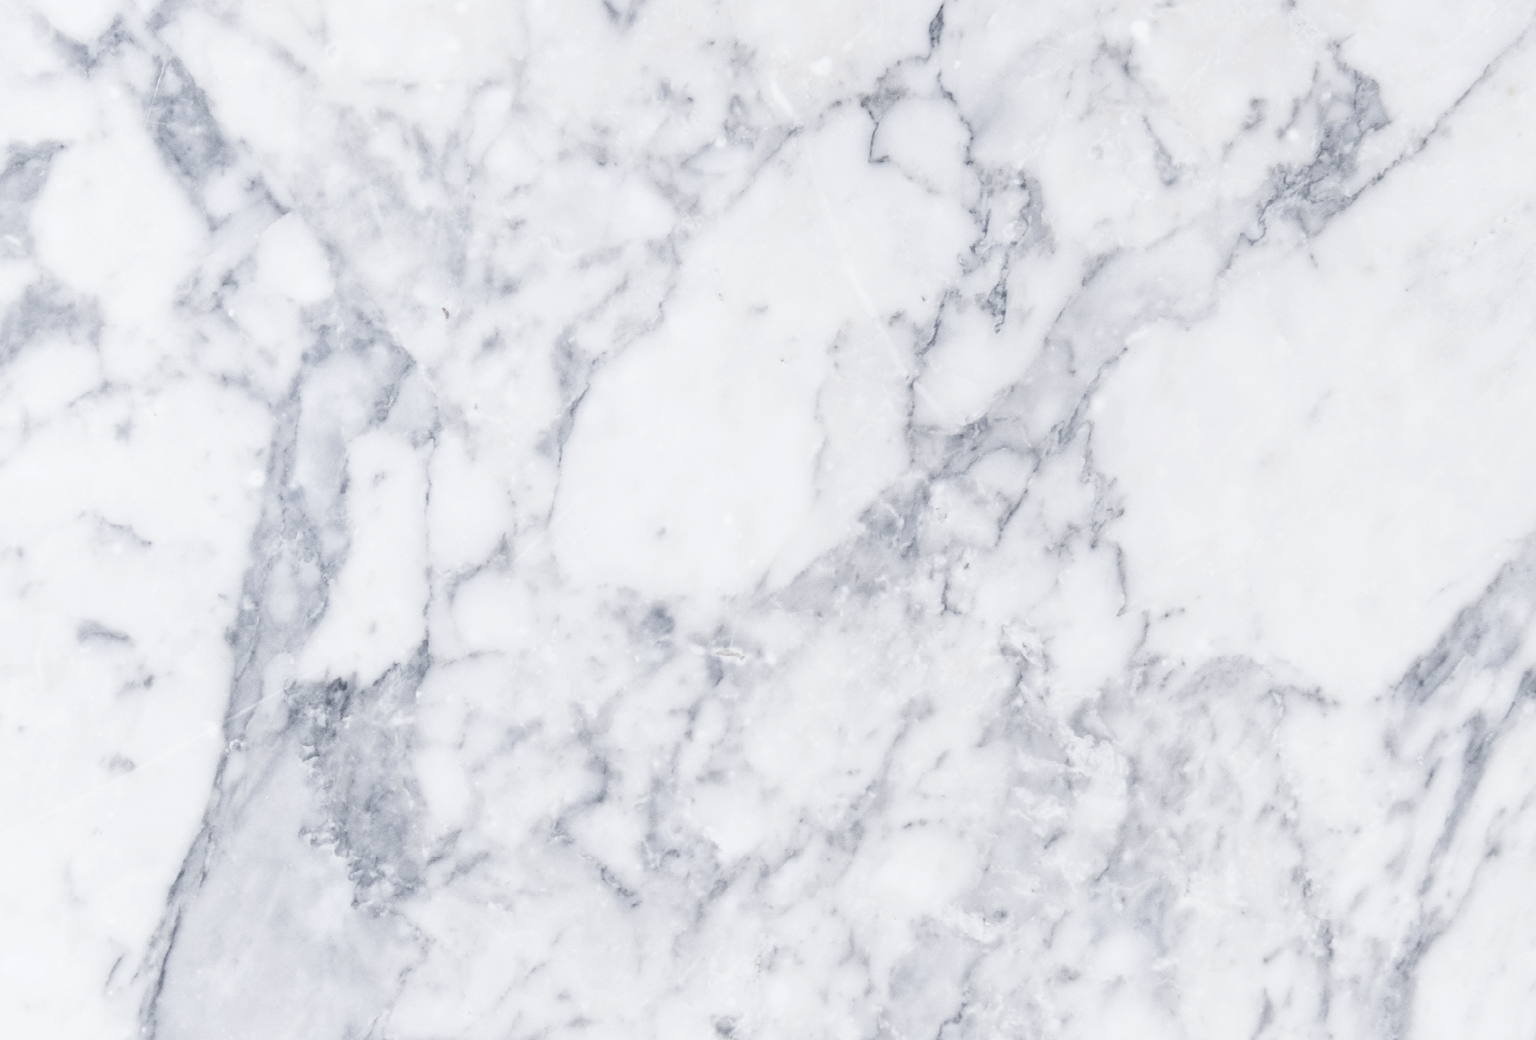 Black And White Marble Desktop Wallpaper Tumblr Pictures 1536x1040